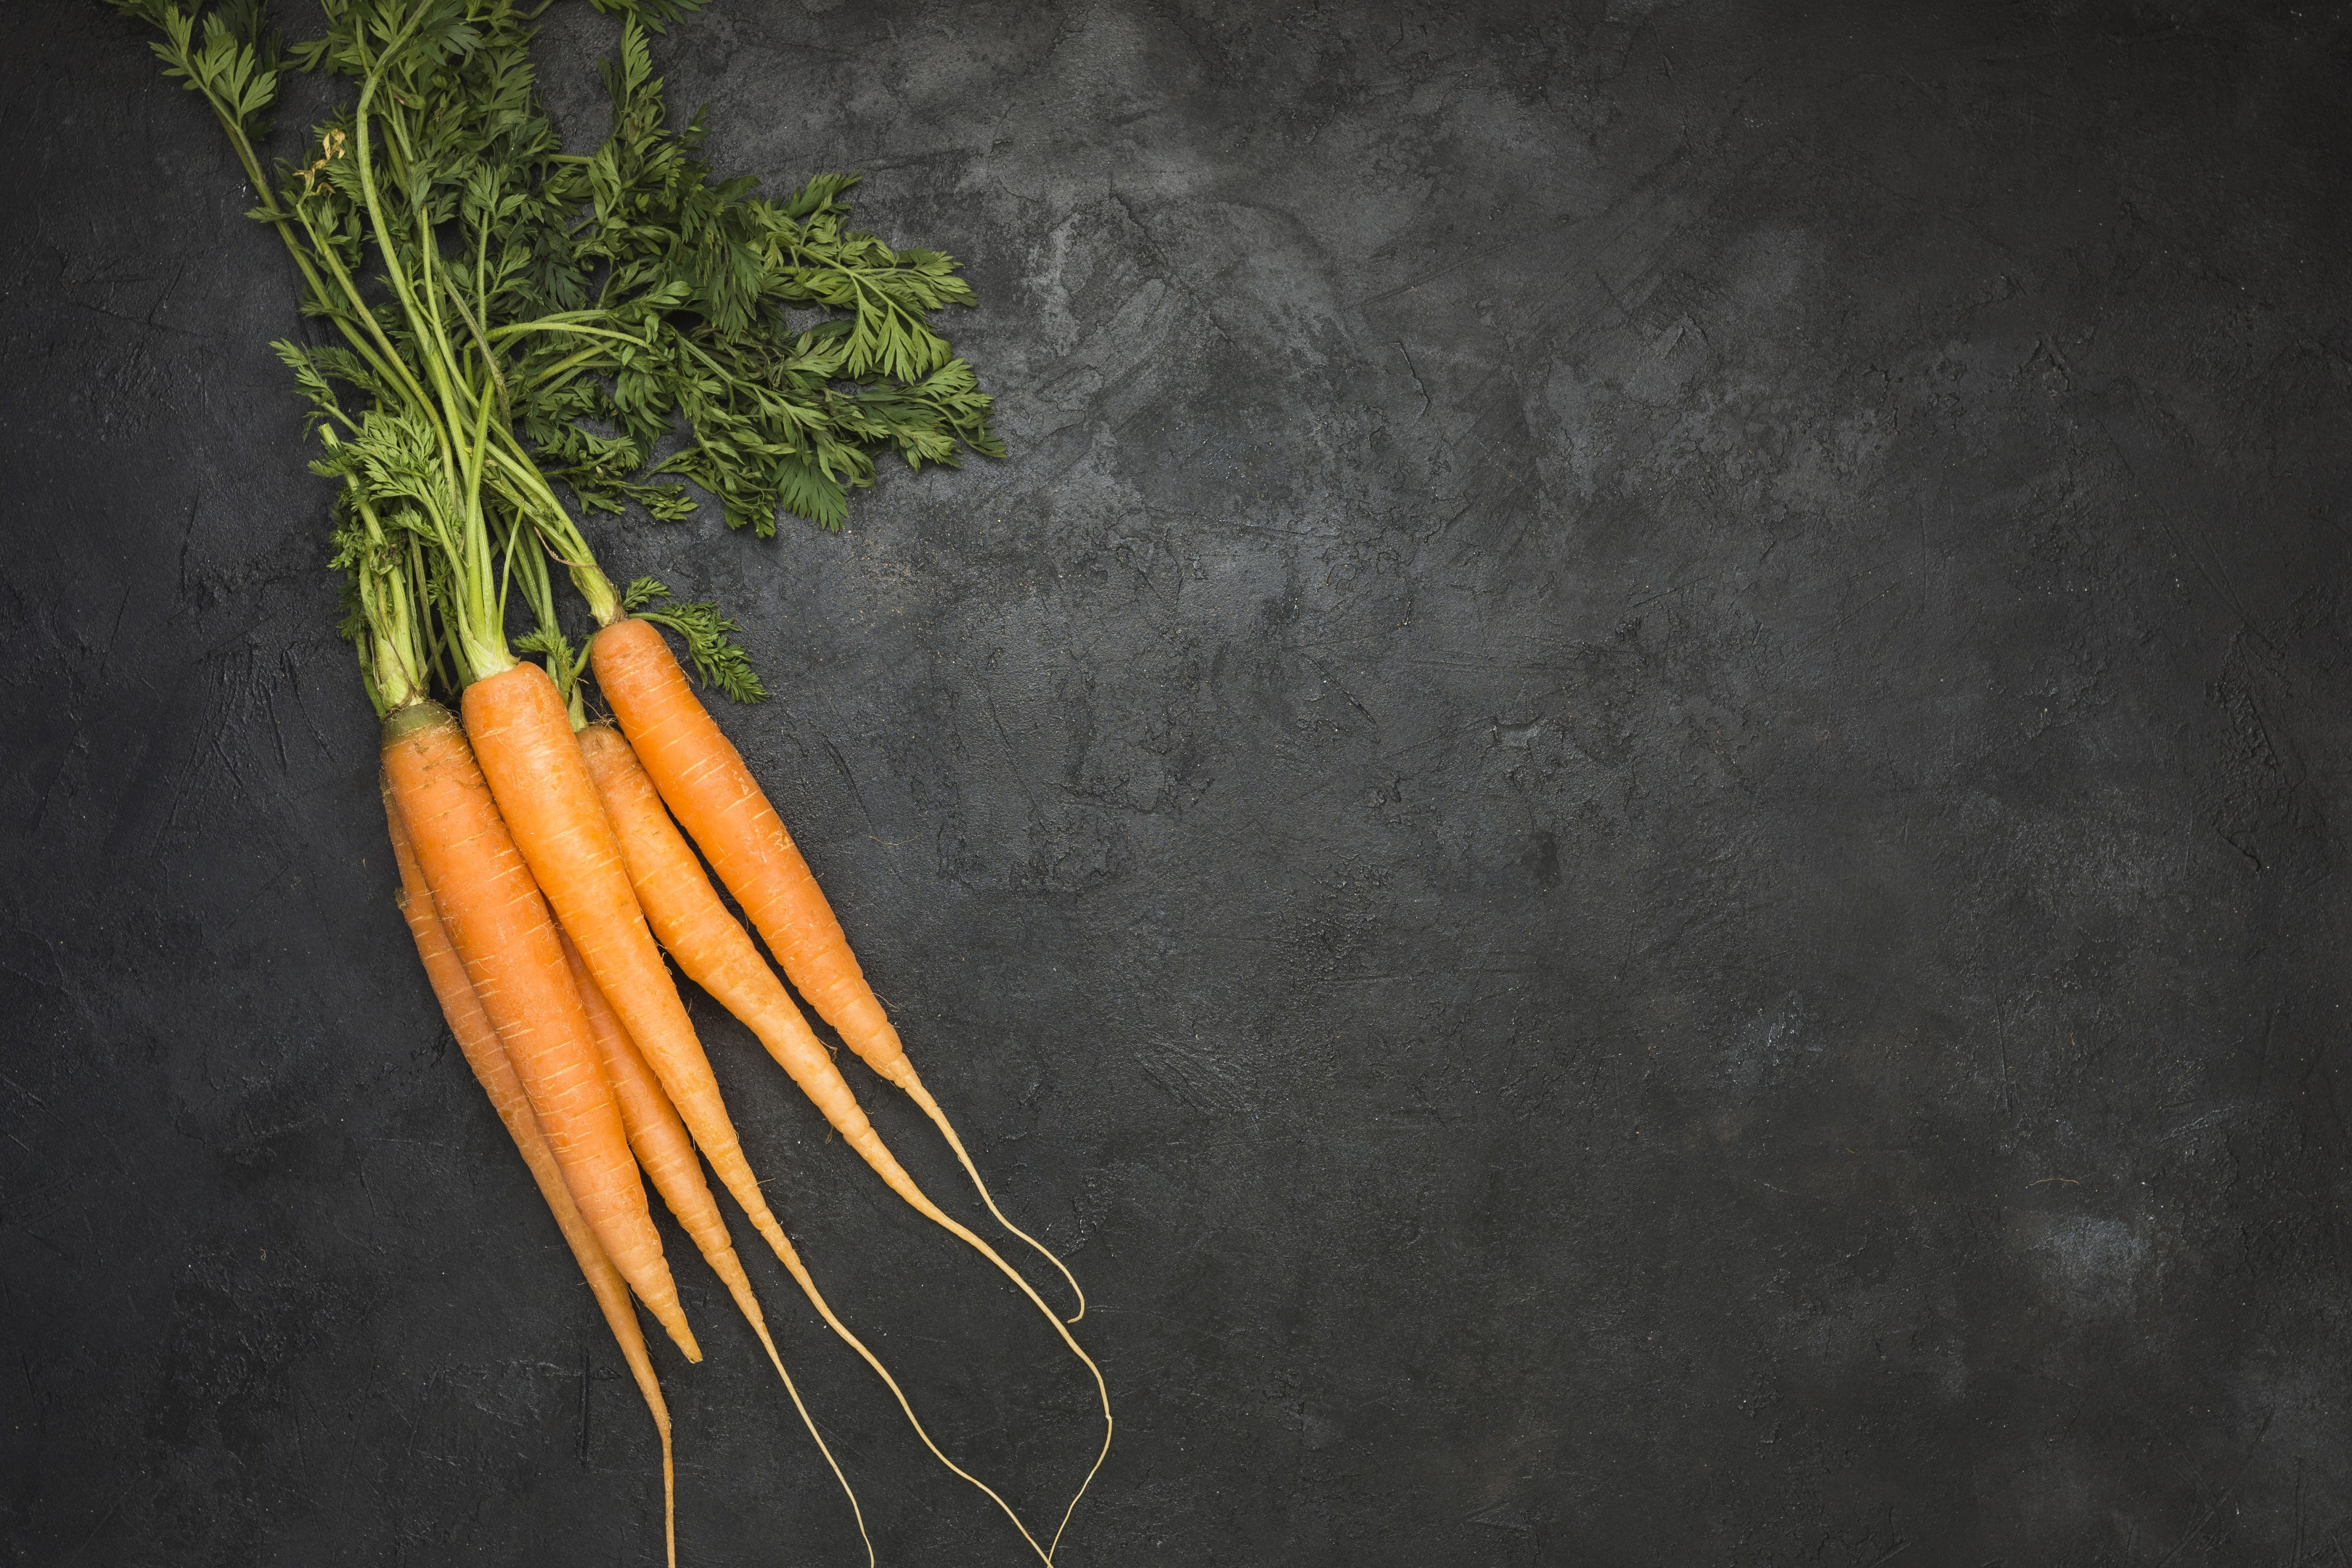 Fresh carrots on dark background